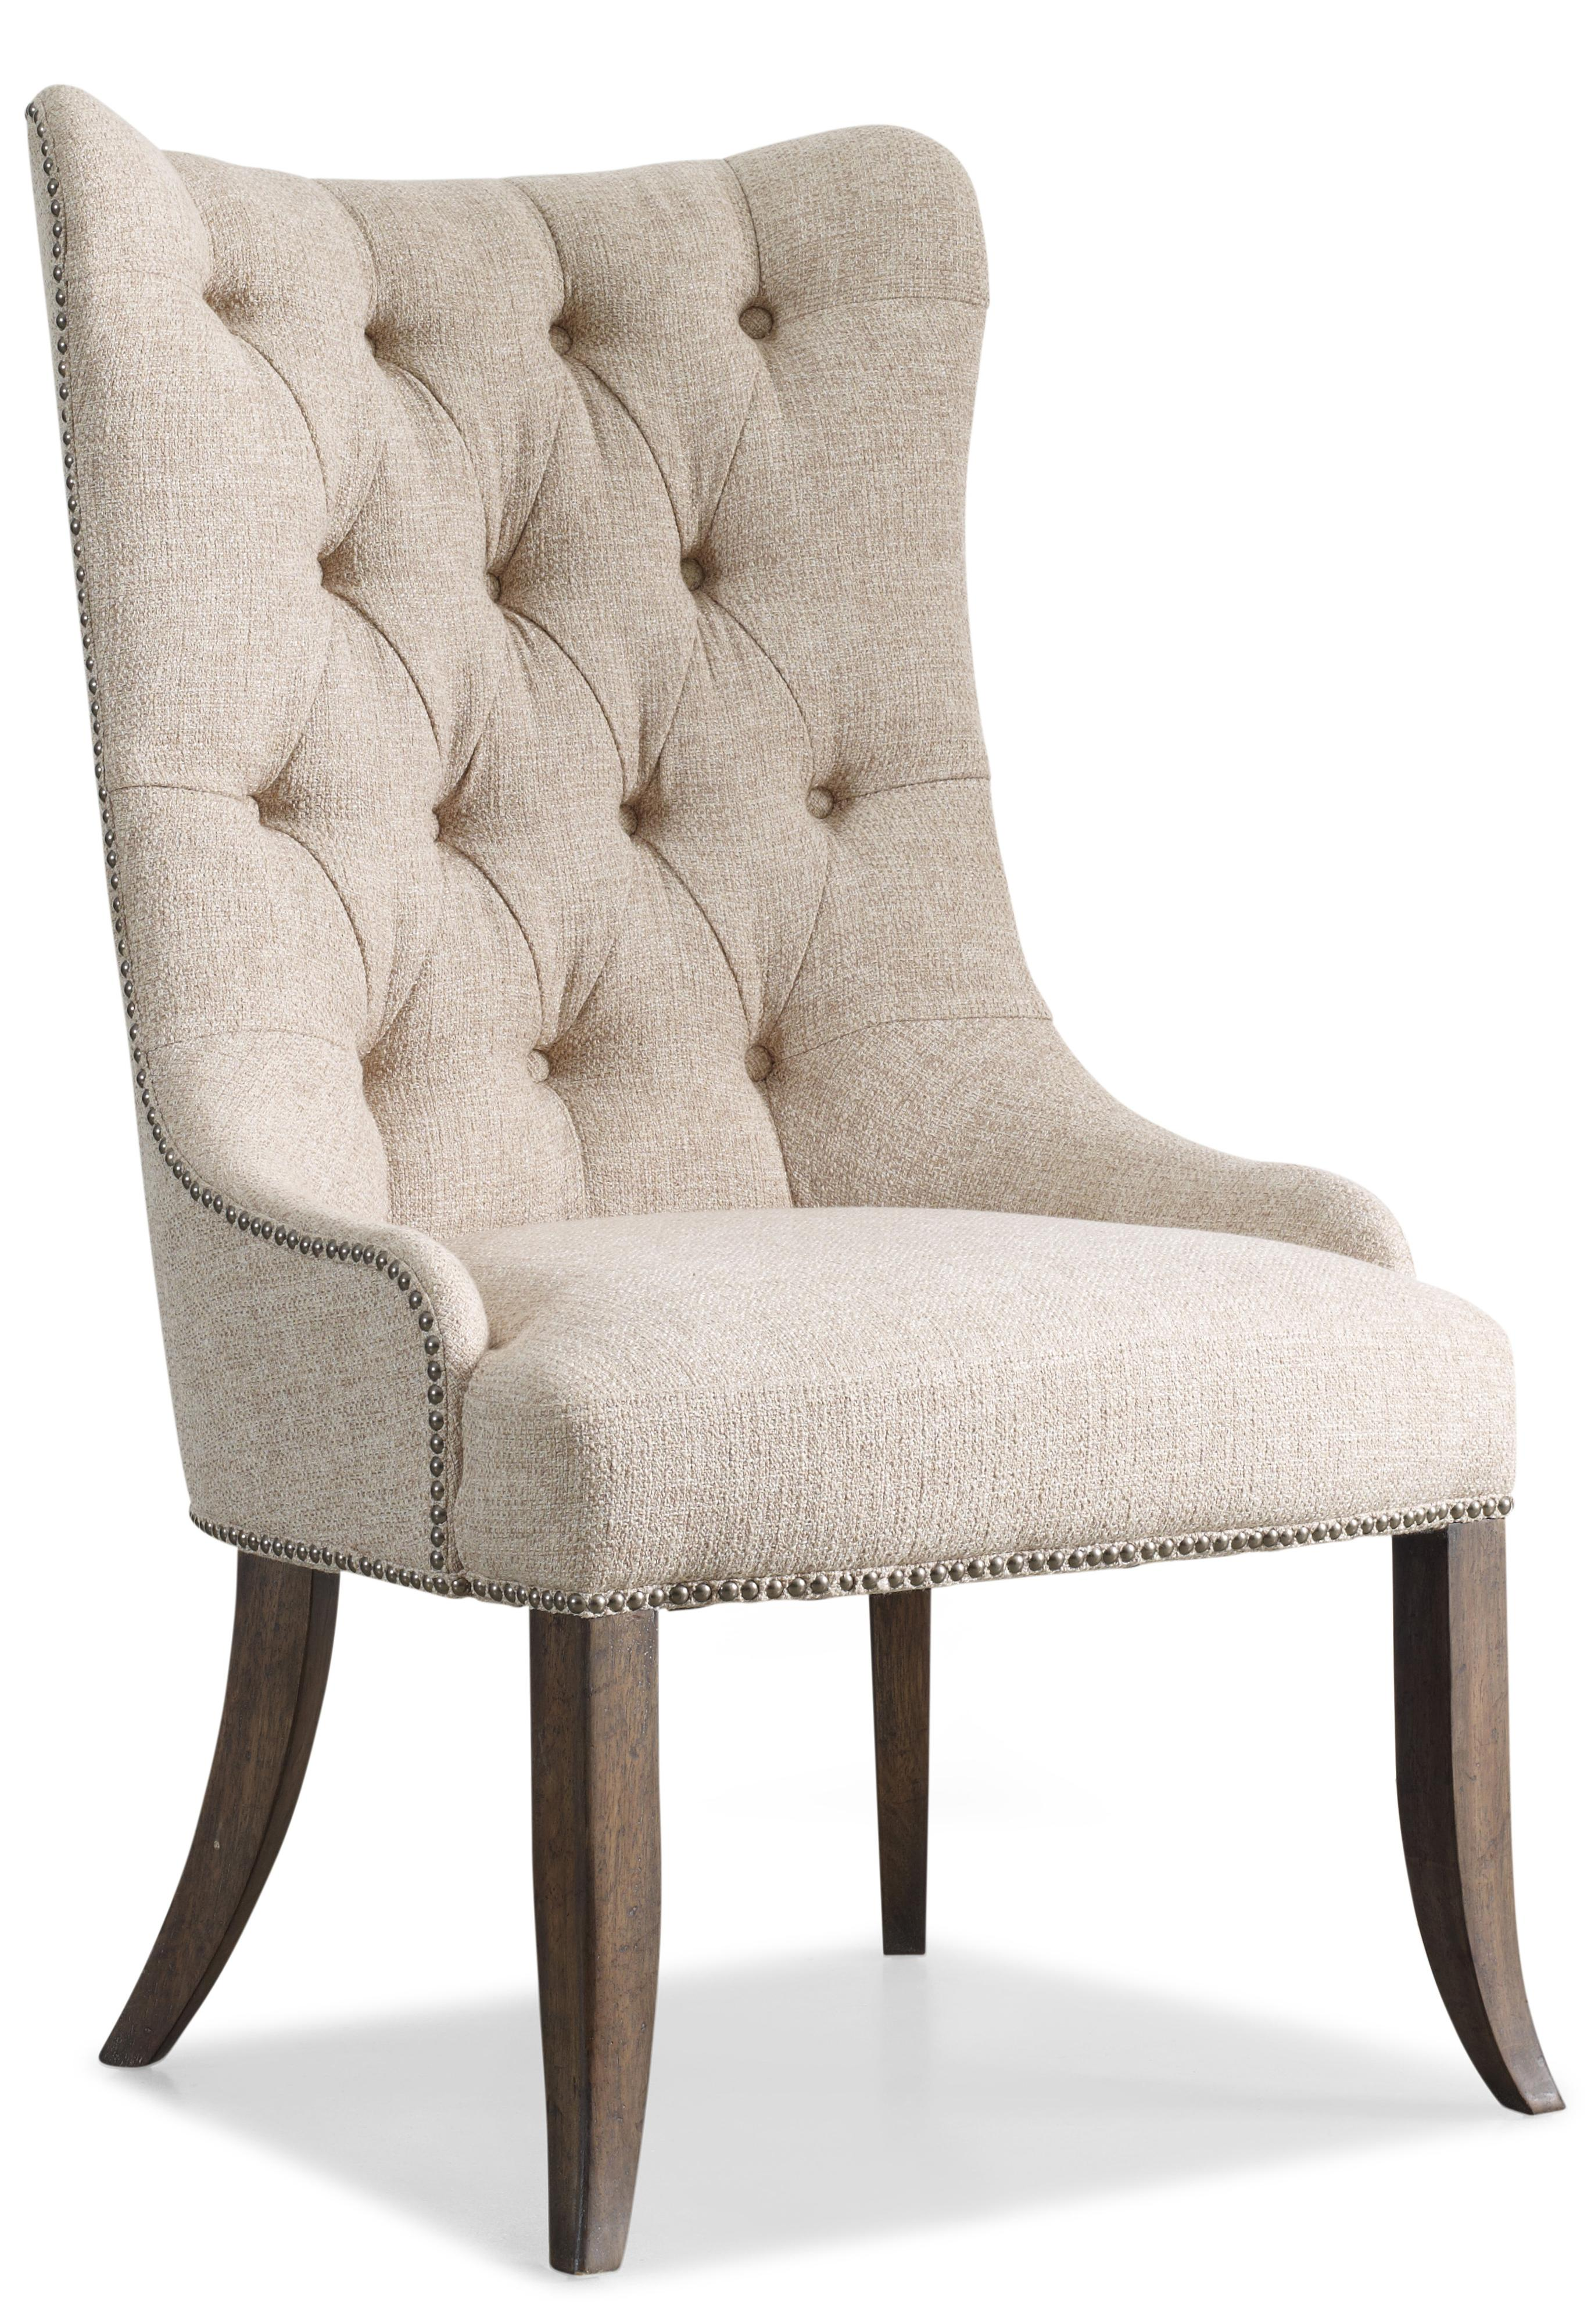 Rhapsody Tufted Dining Chair by Hooker Furniture at Belfort Furniture